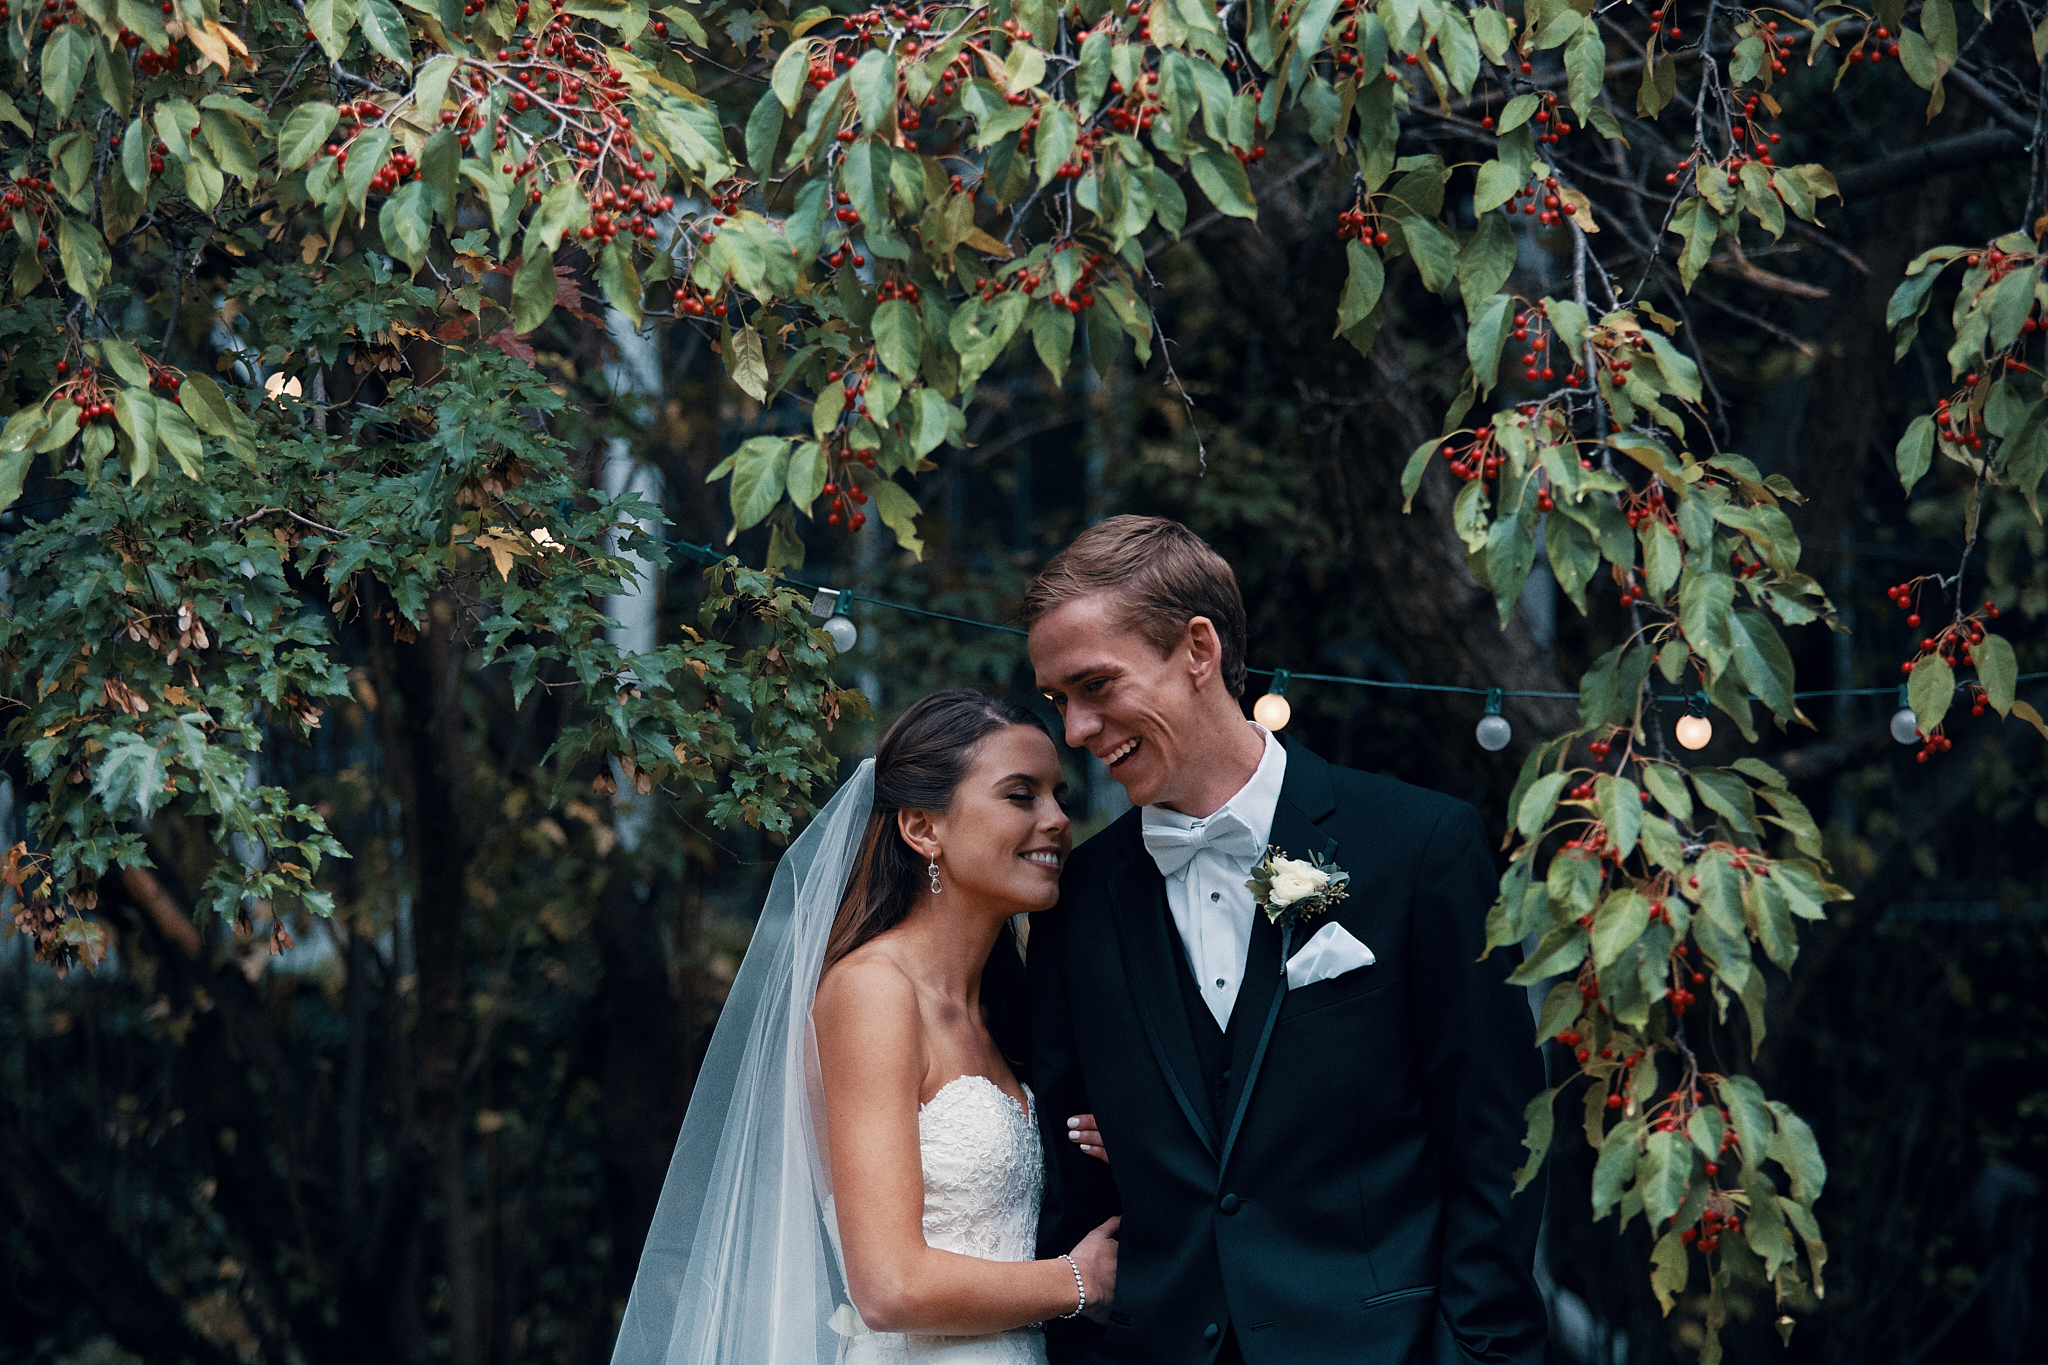 Gorgeous_Wedding_At_The_Outing_Lodge_In_Stillwater_Photography_High_End_Brand_Photographer_Something_Candid_016.JPG